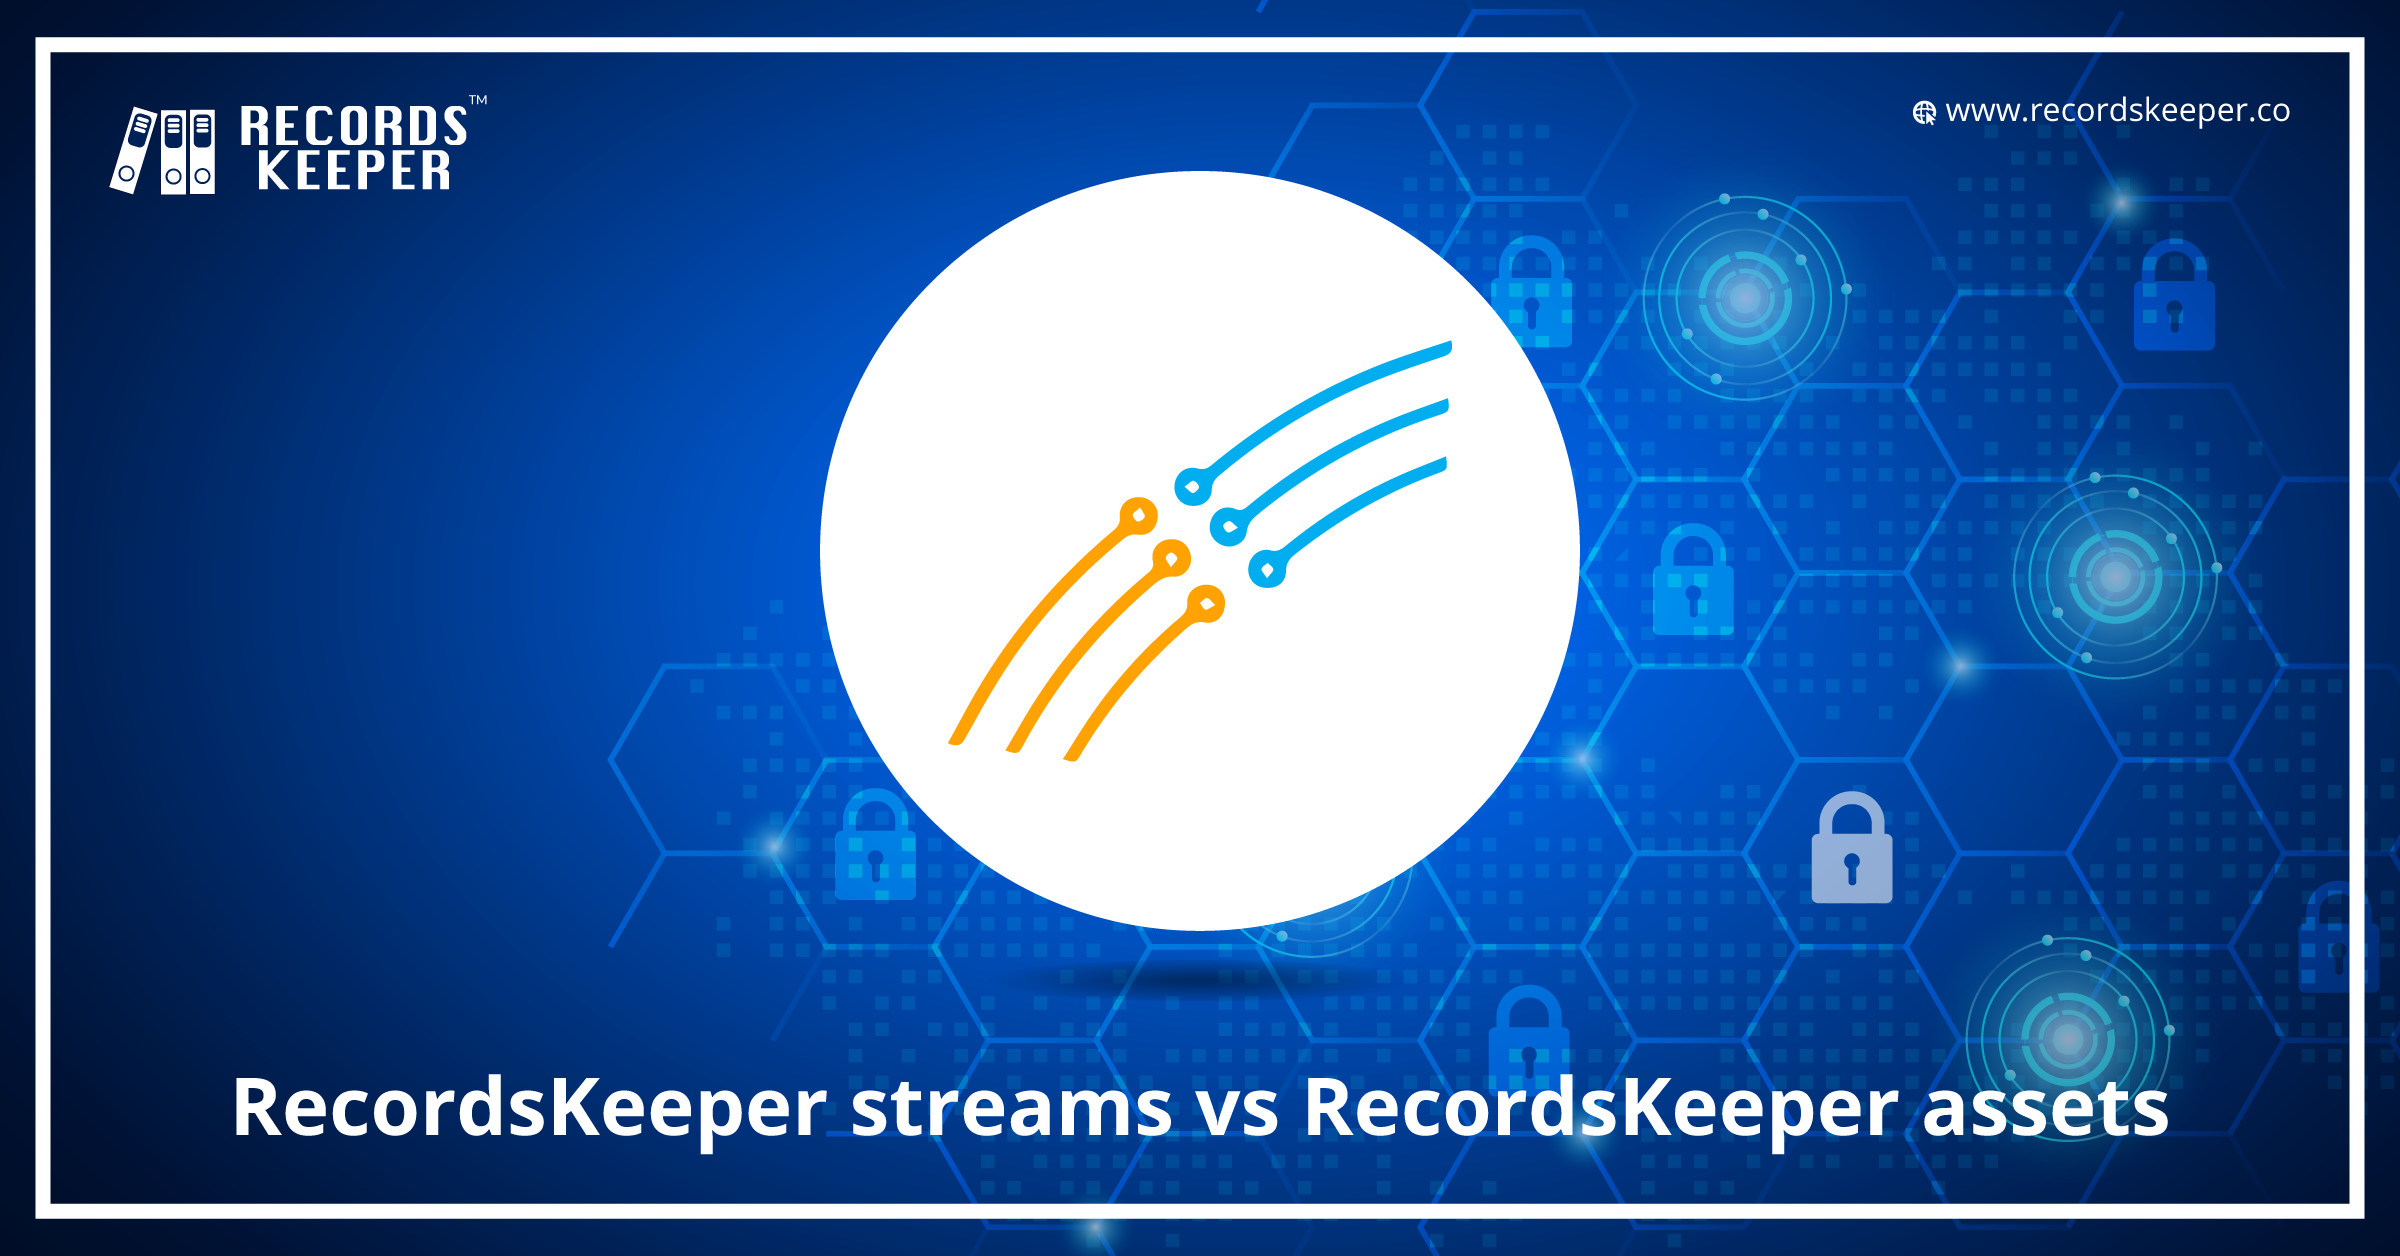 RecordsKeeper streams vs RecordsKeeper assets